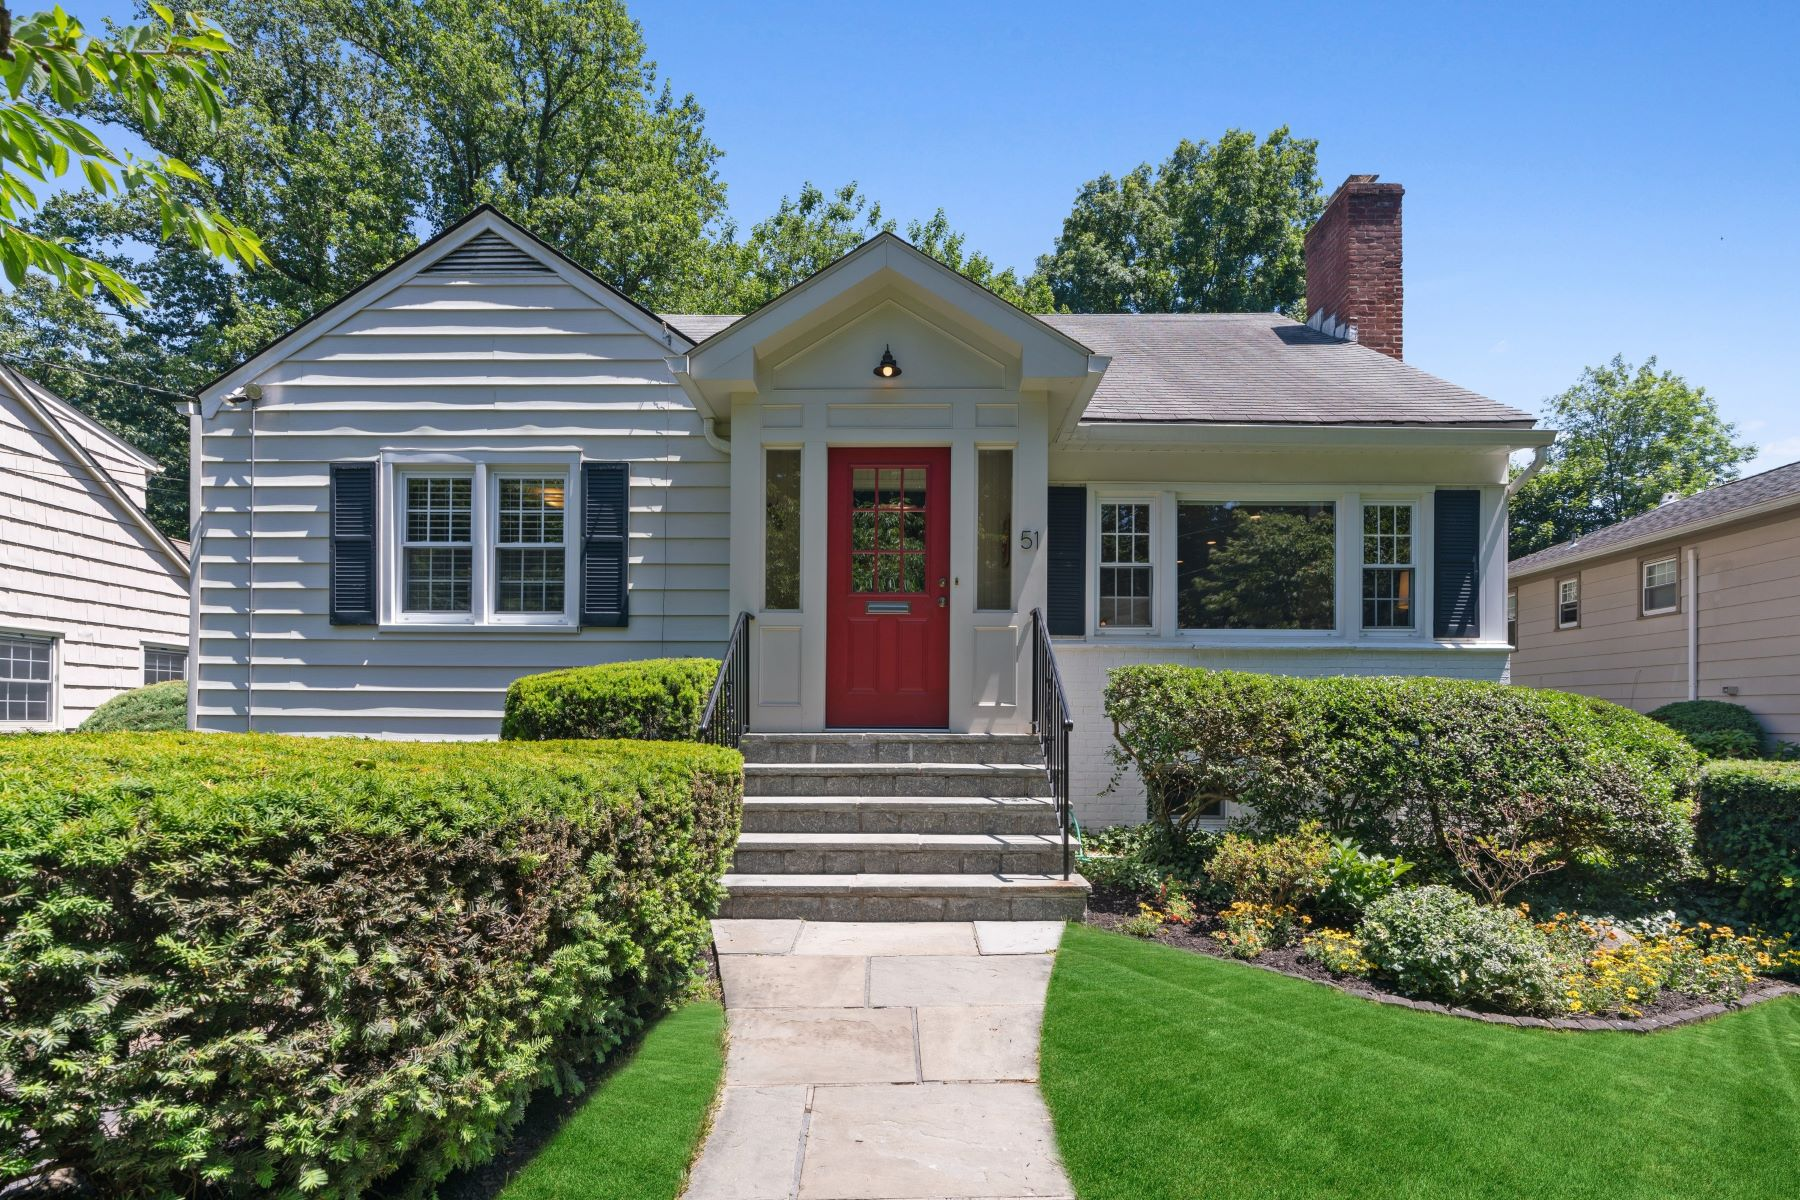 Single Family Homes for Active at 51 Rockwood Drive Larchmont, New York 10538 United States